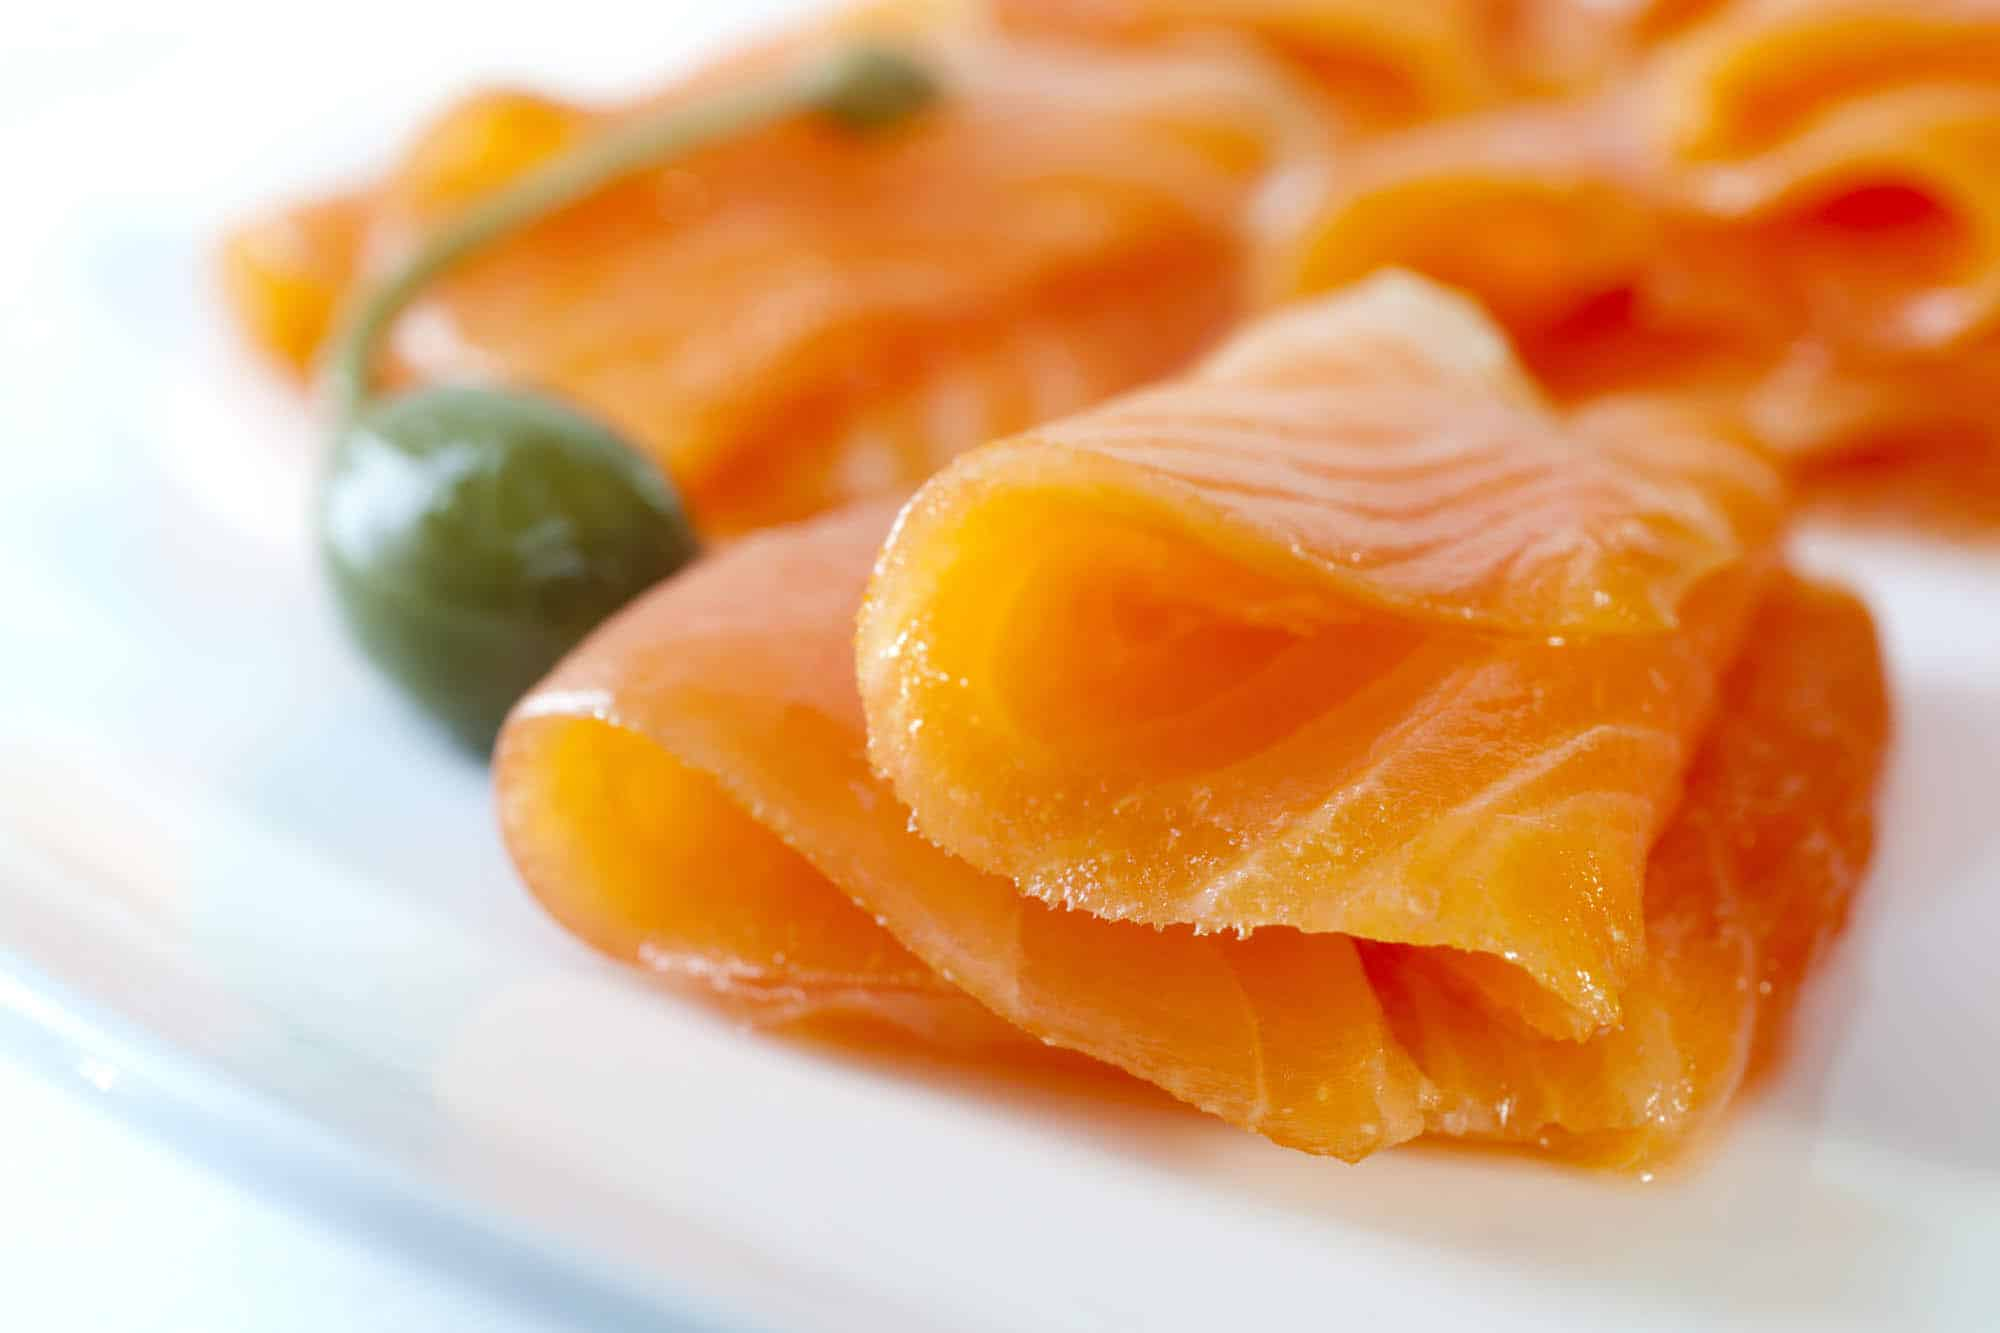 ... wild mushrooms cured salmon lox homemade wild alaskan lox homemade lox